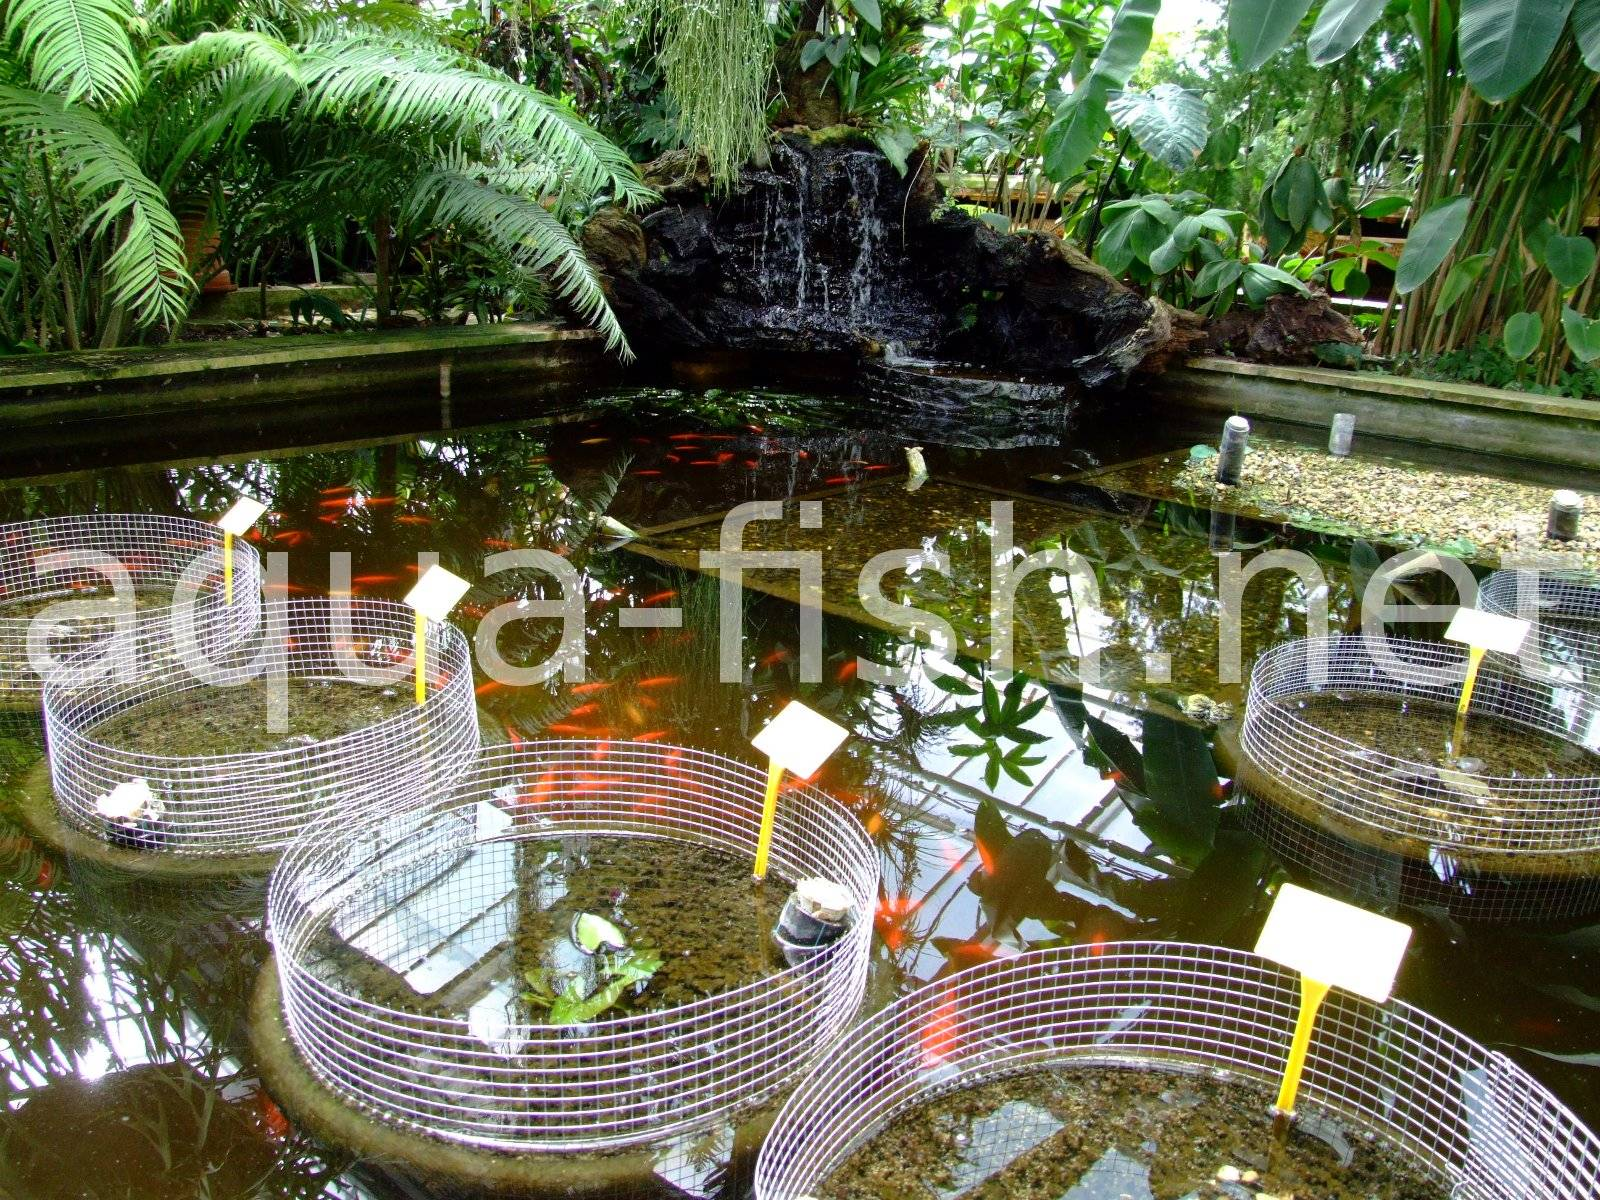 Ideas on building fish ponds along with images and discussion for Outdoor fish pond setup